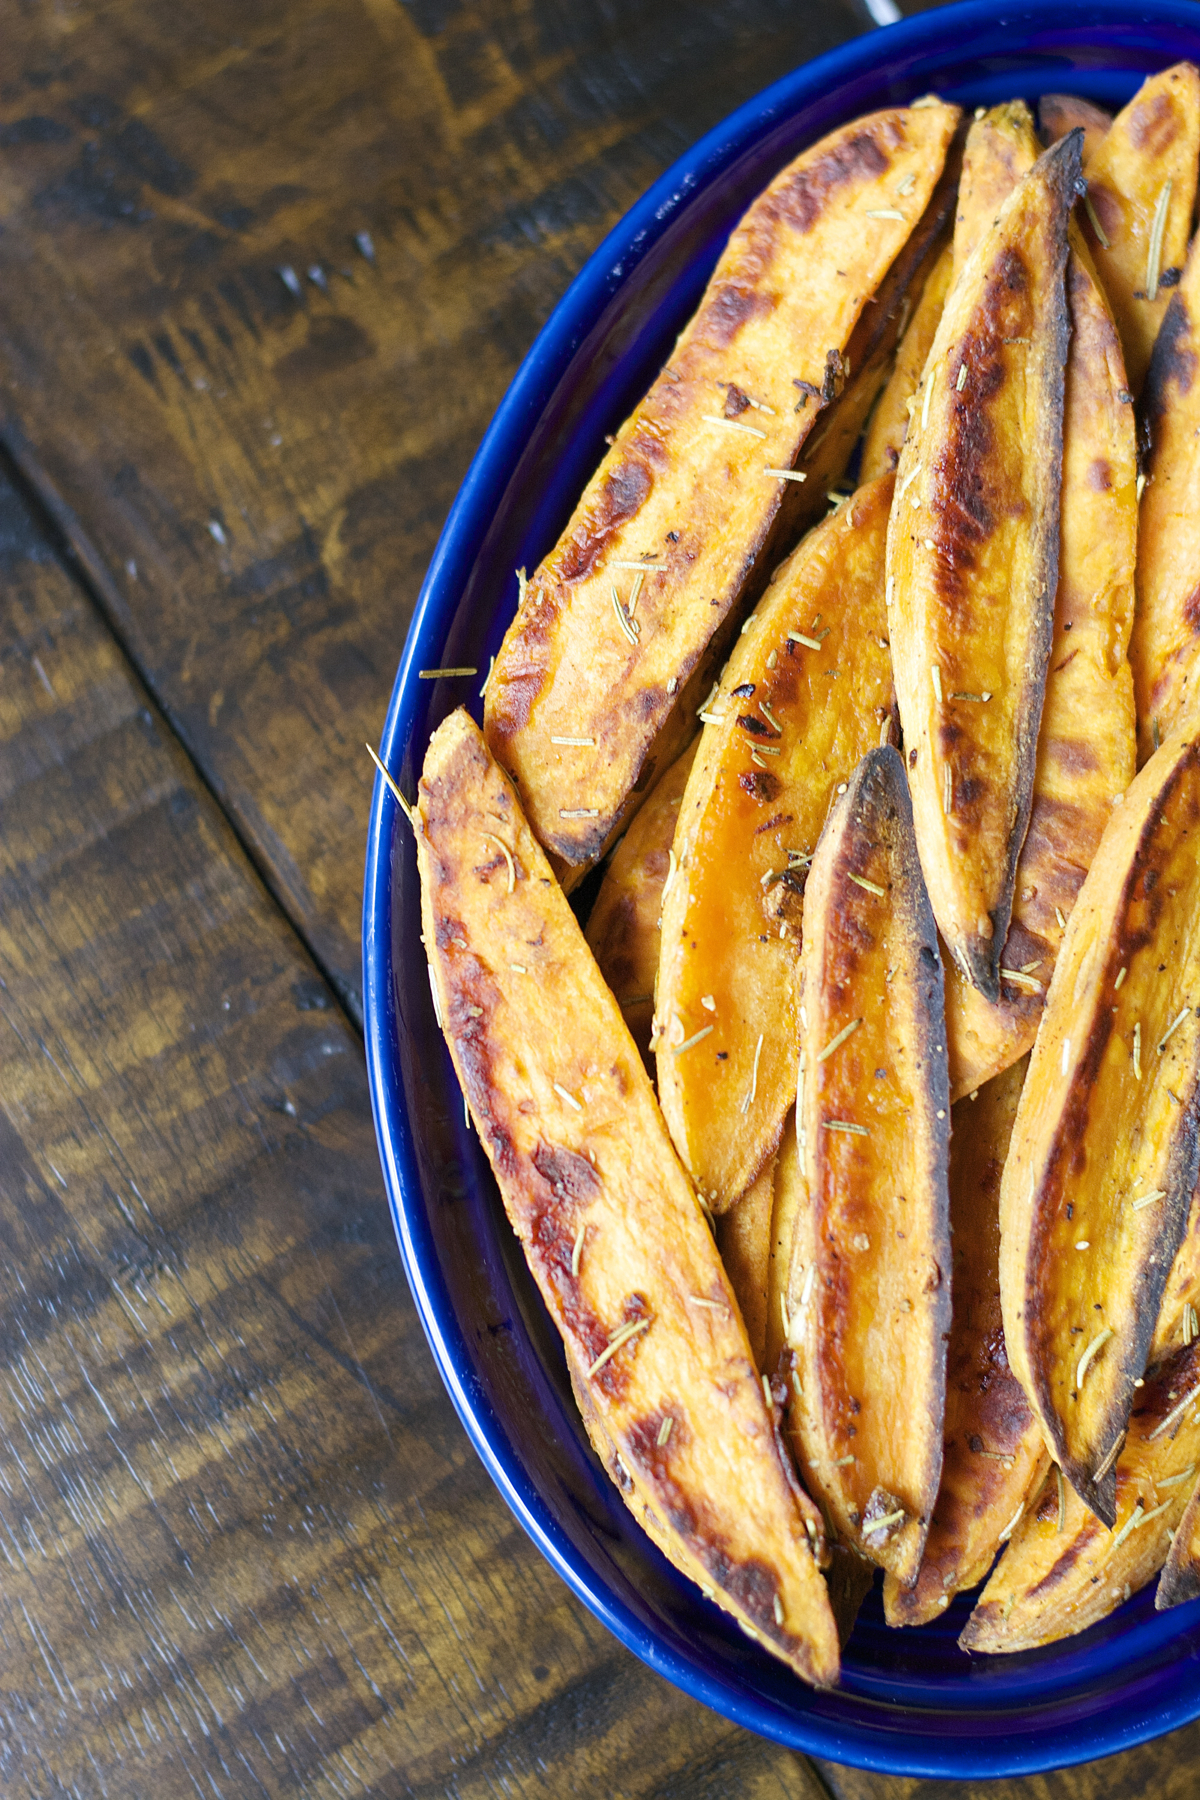 oven baked sweet potato wedges in a blue dish